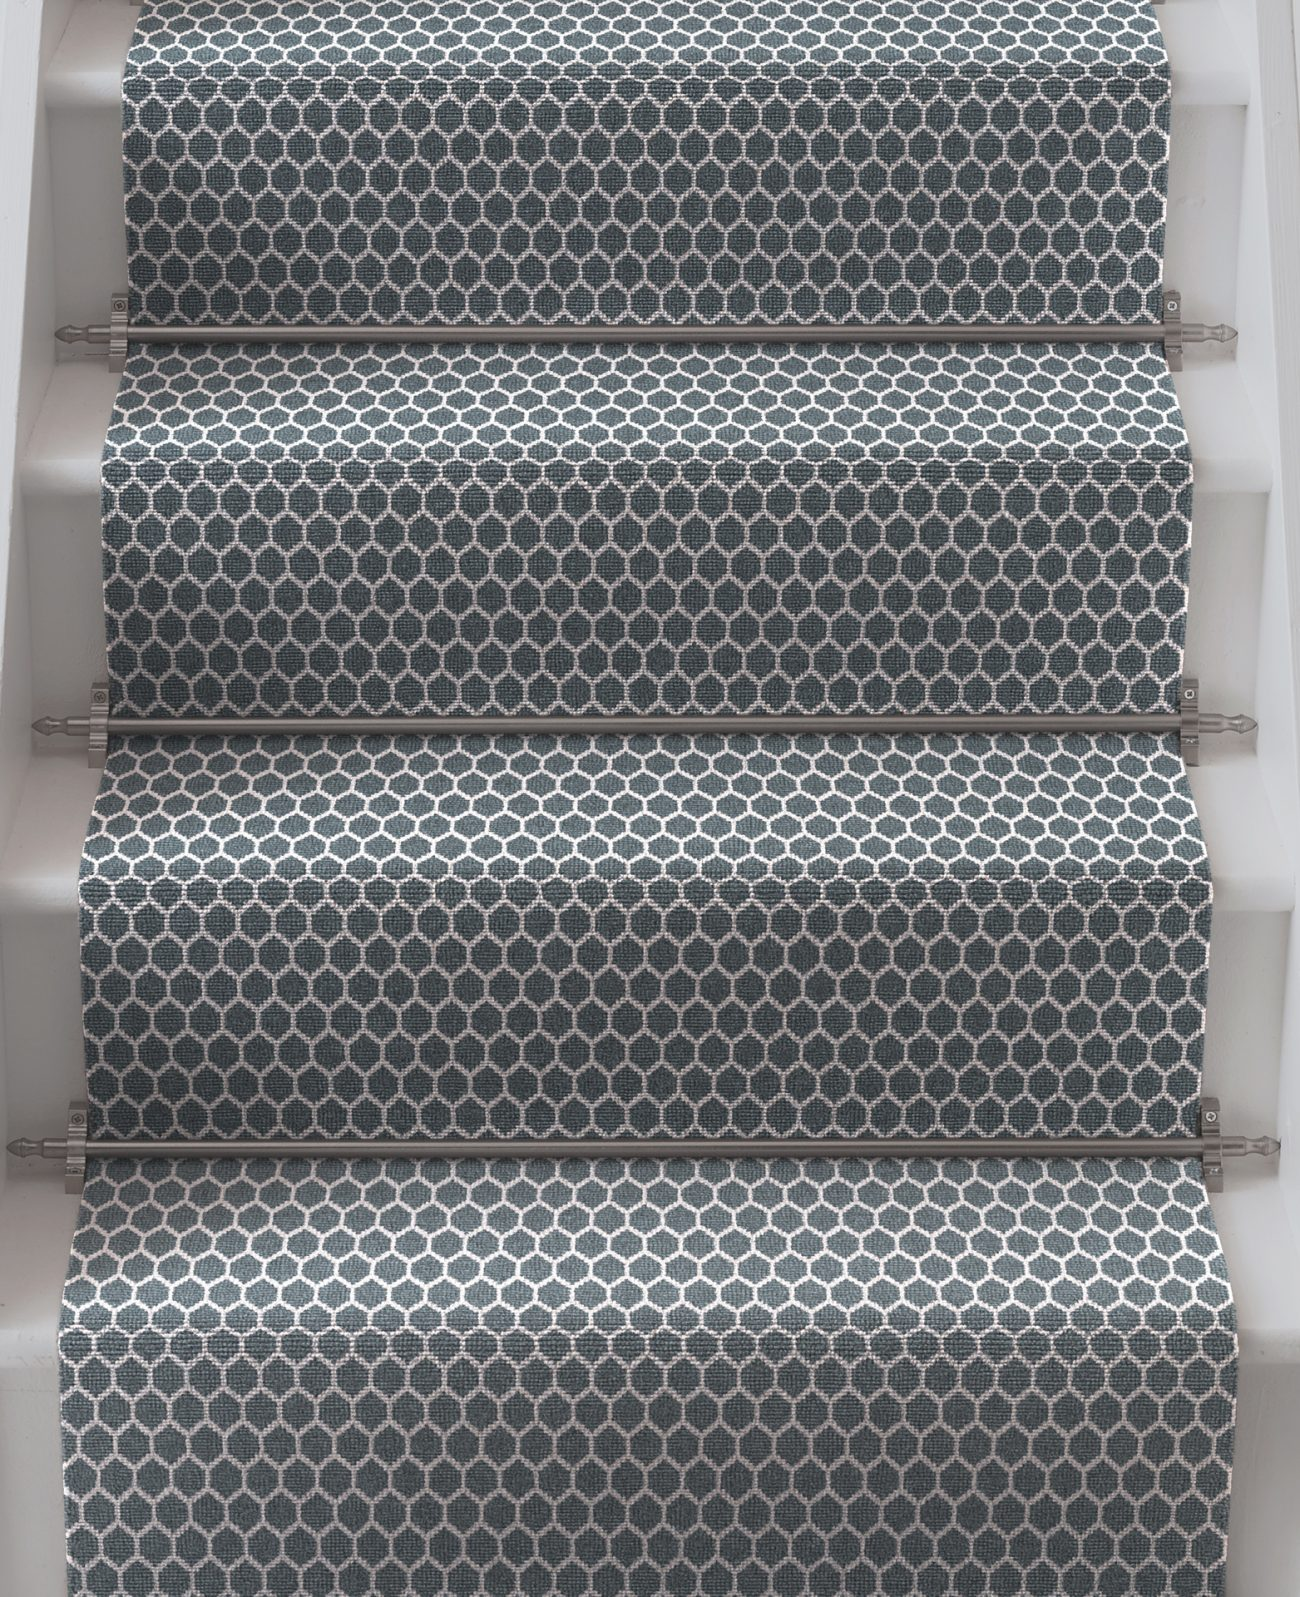 Chelsea Metropolitan Collection Scandi Grey CHEL 034